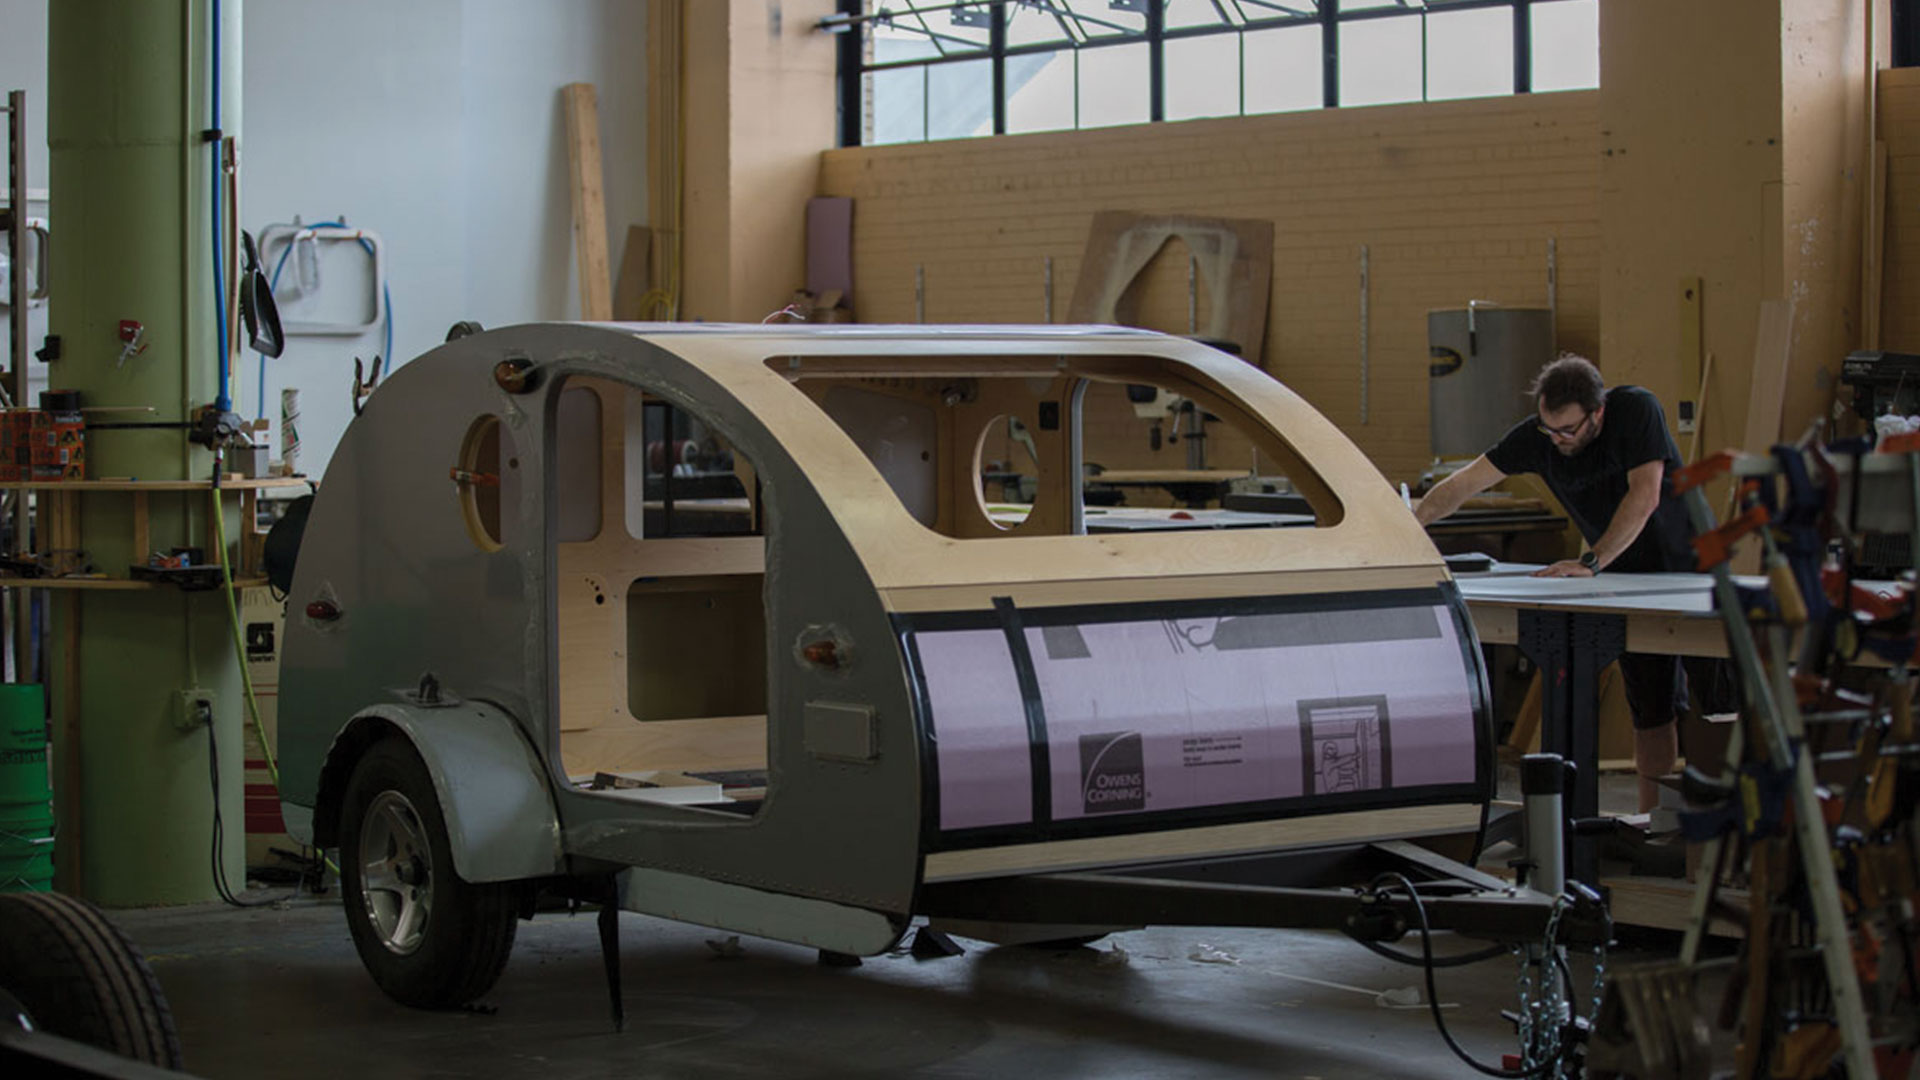 This Teardrop trailer uses Sunflare uses Sunflare thin, lightweight, flexible solar.